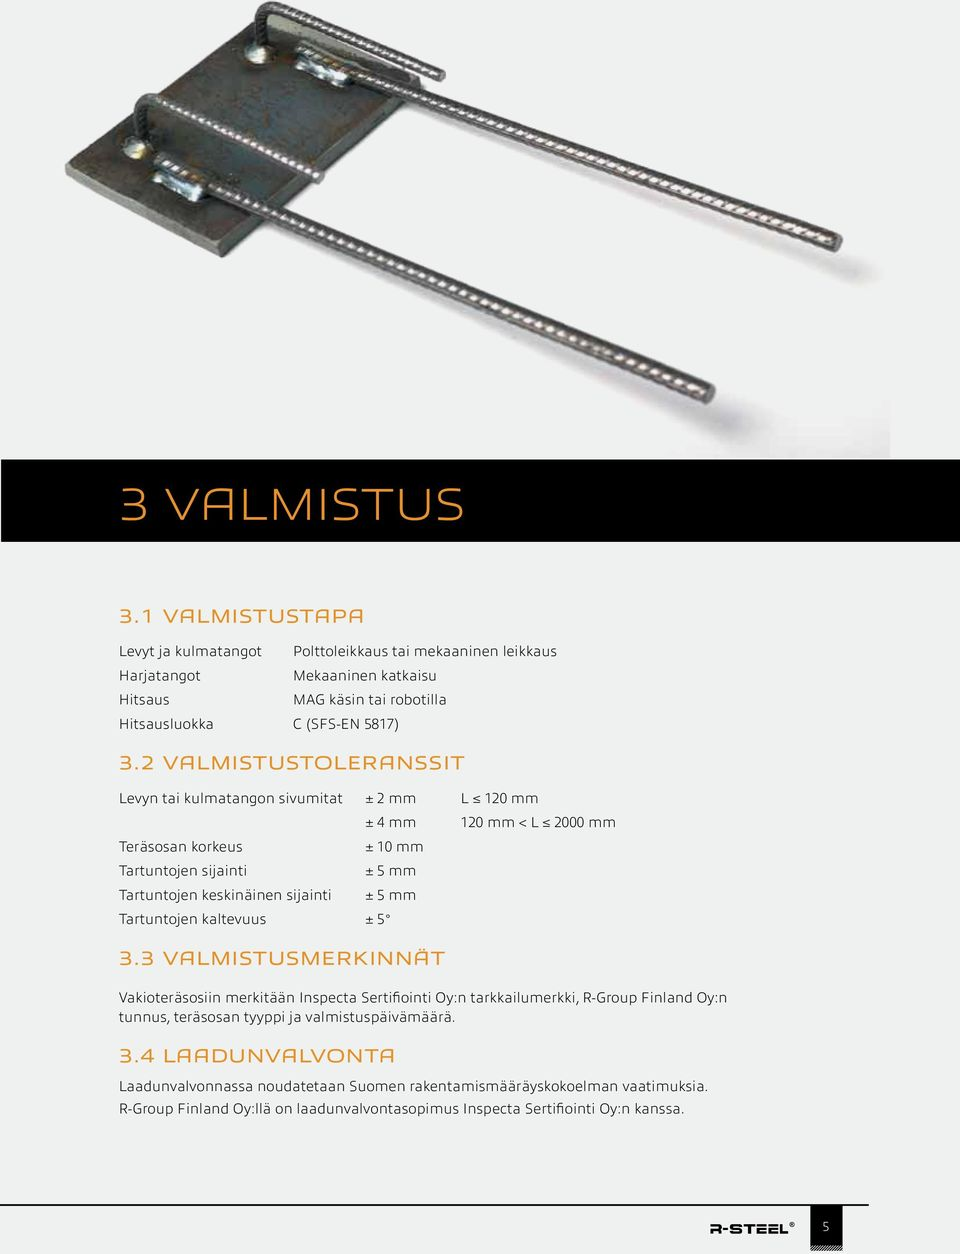 5 mm Tartuntojen kaltevuus ± 5 3.